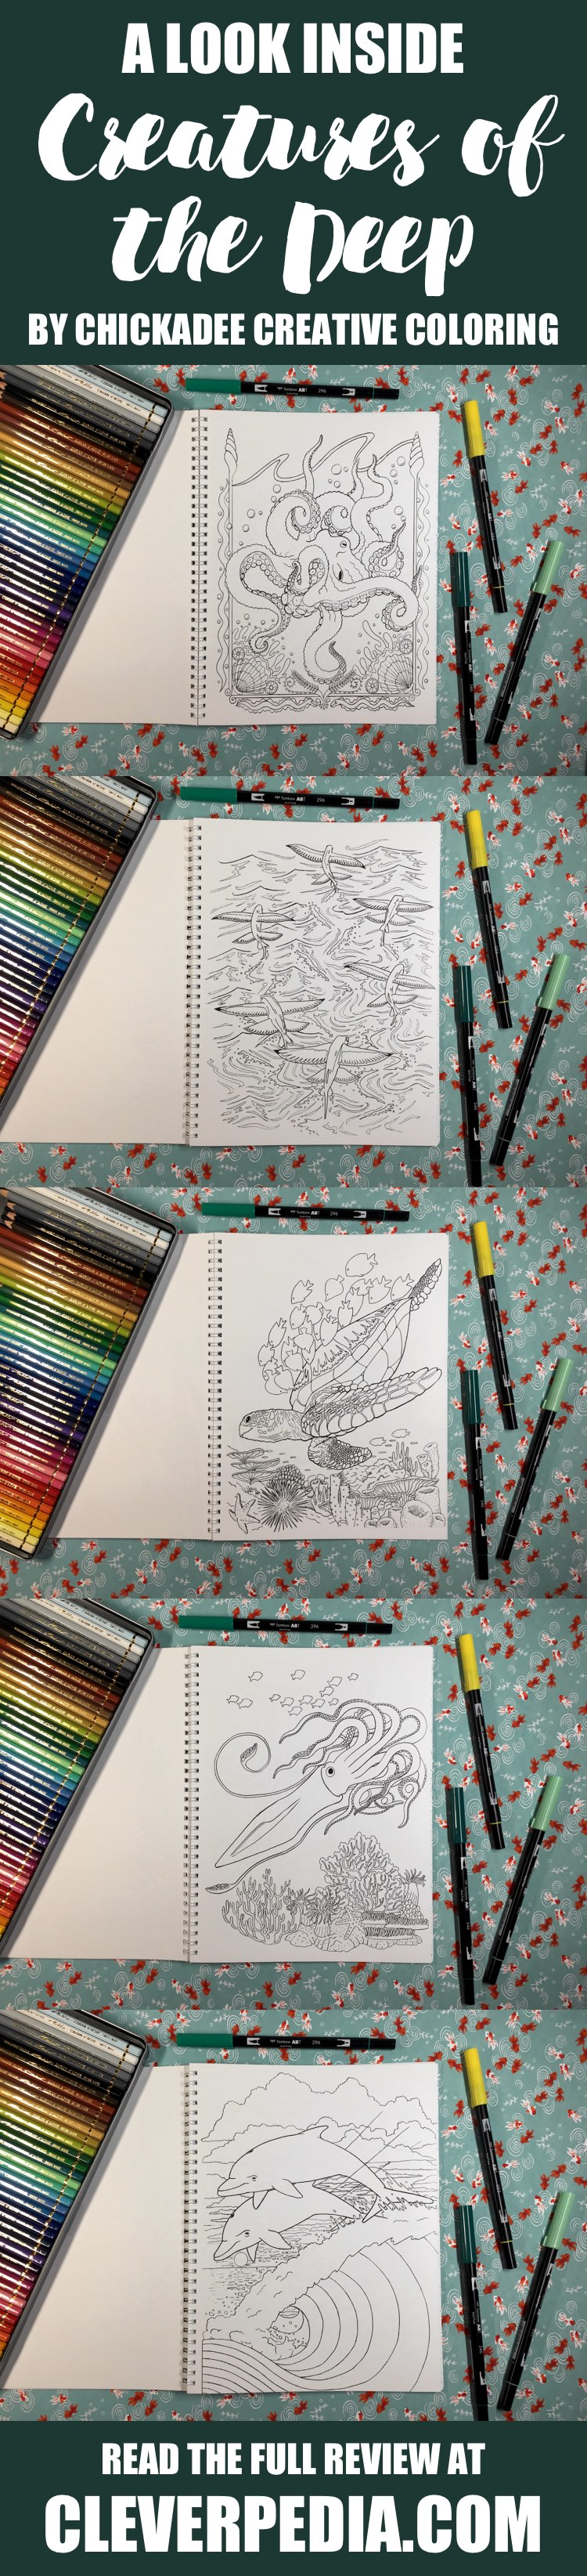 A look inside Creatures of the Deep, an adult coloring book by Chickadee Creative Coloring! This coloring book features 24 pages of original artwork by Andrew Youngblood. All the images feature realistic sea creatures, including fish, coral, sea turtles, octopi and squid, dolphins, and more.